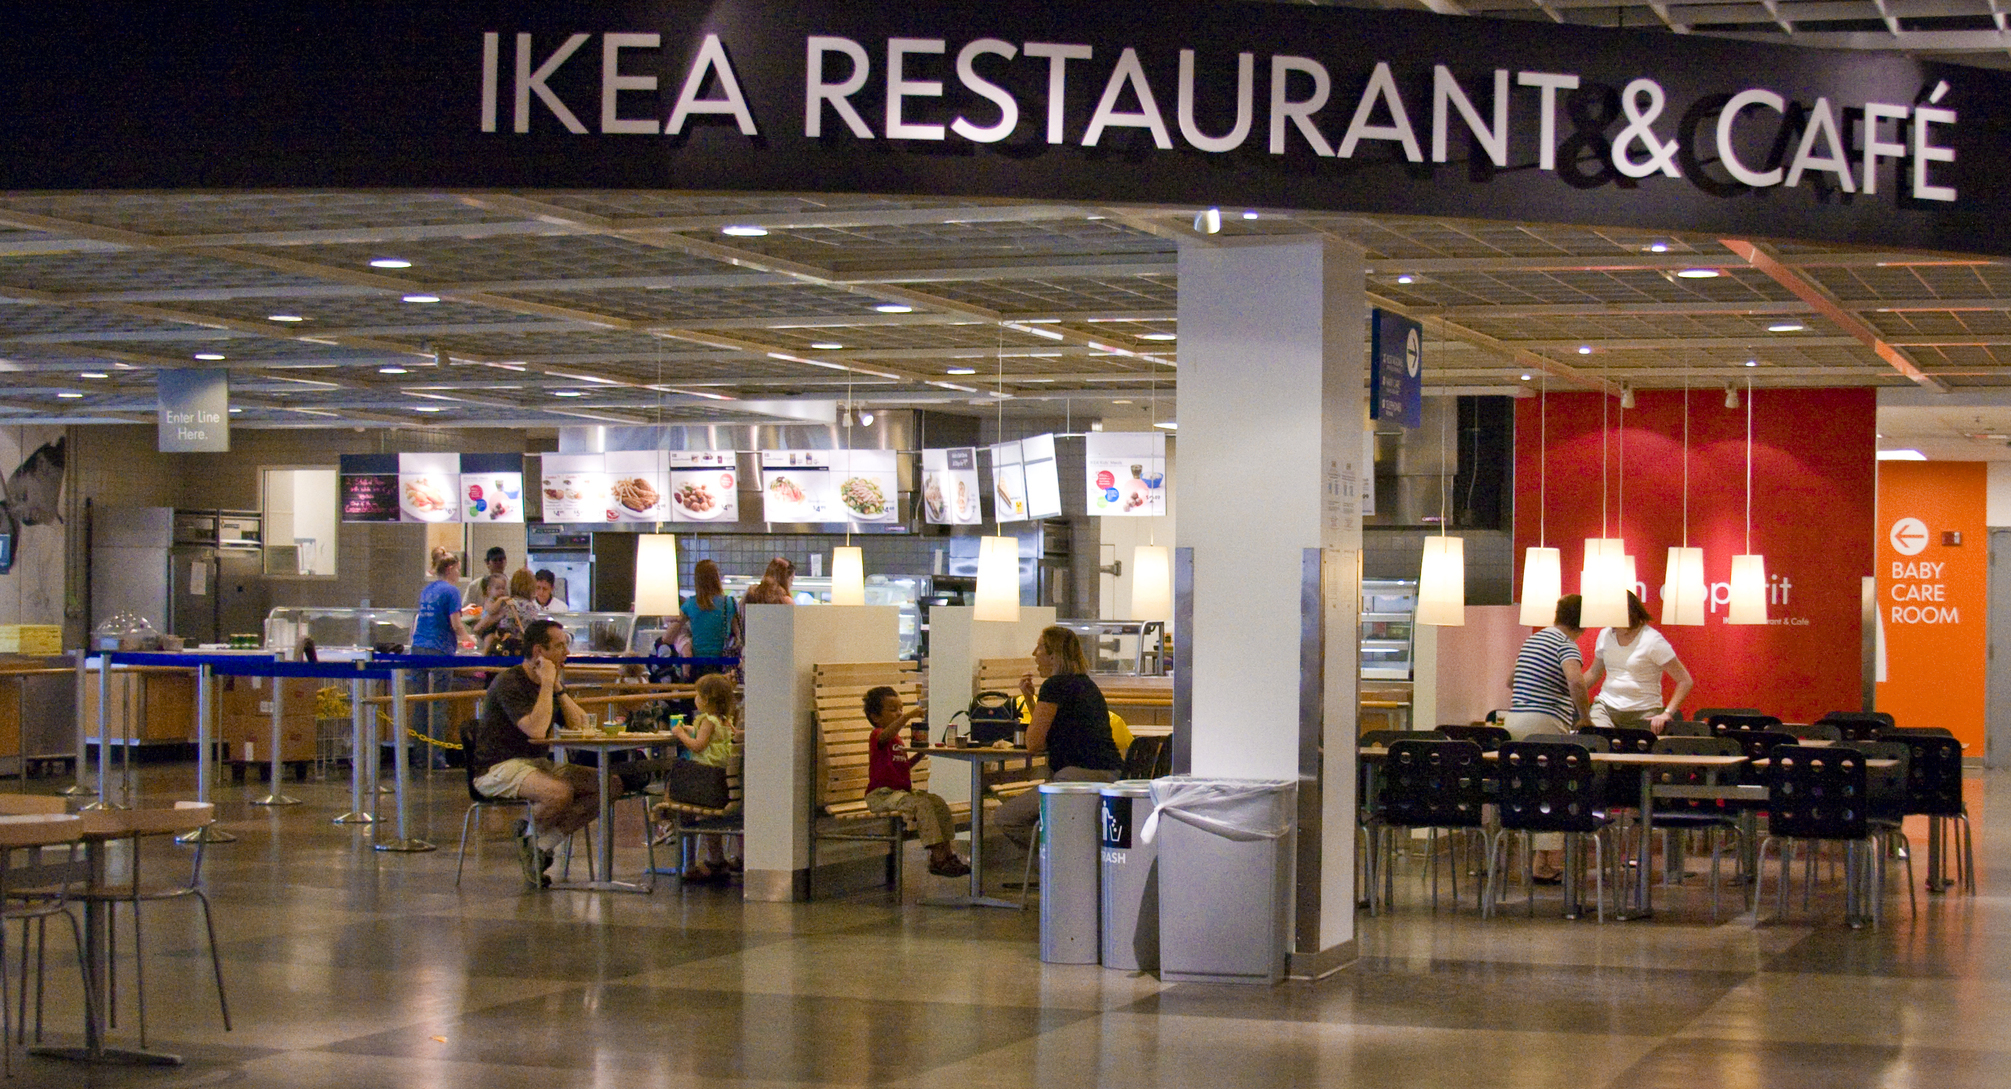 Ikea Restaurant And Cafe